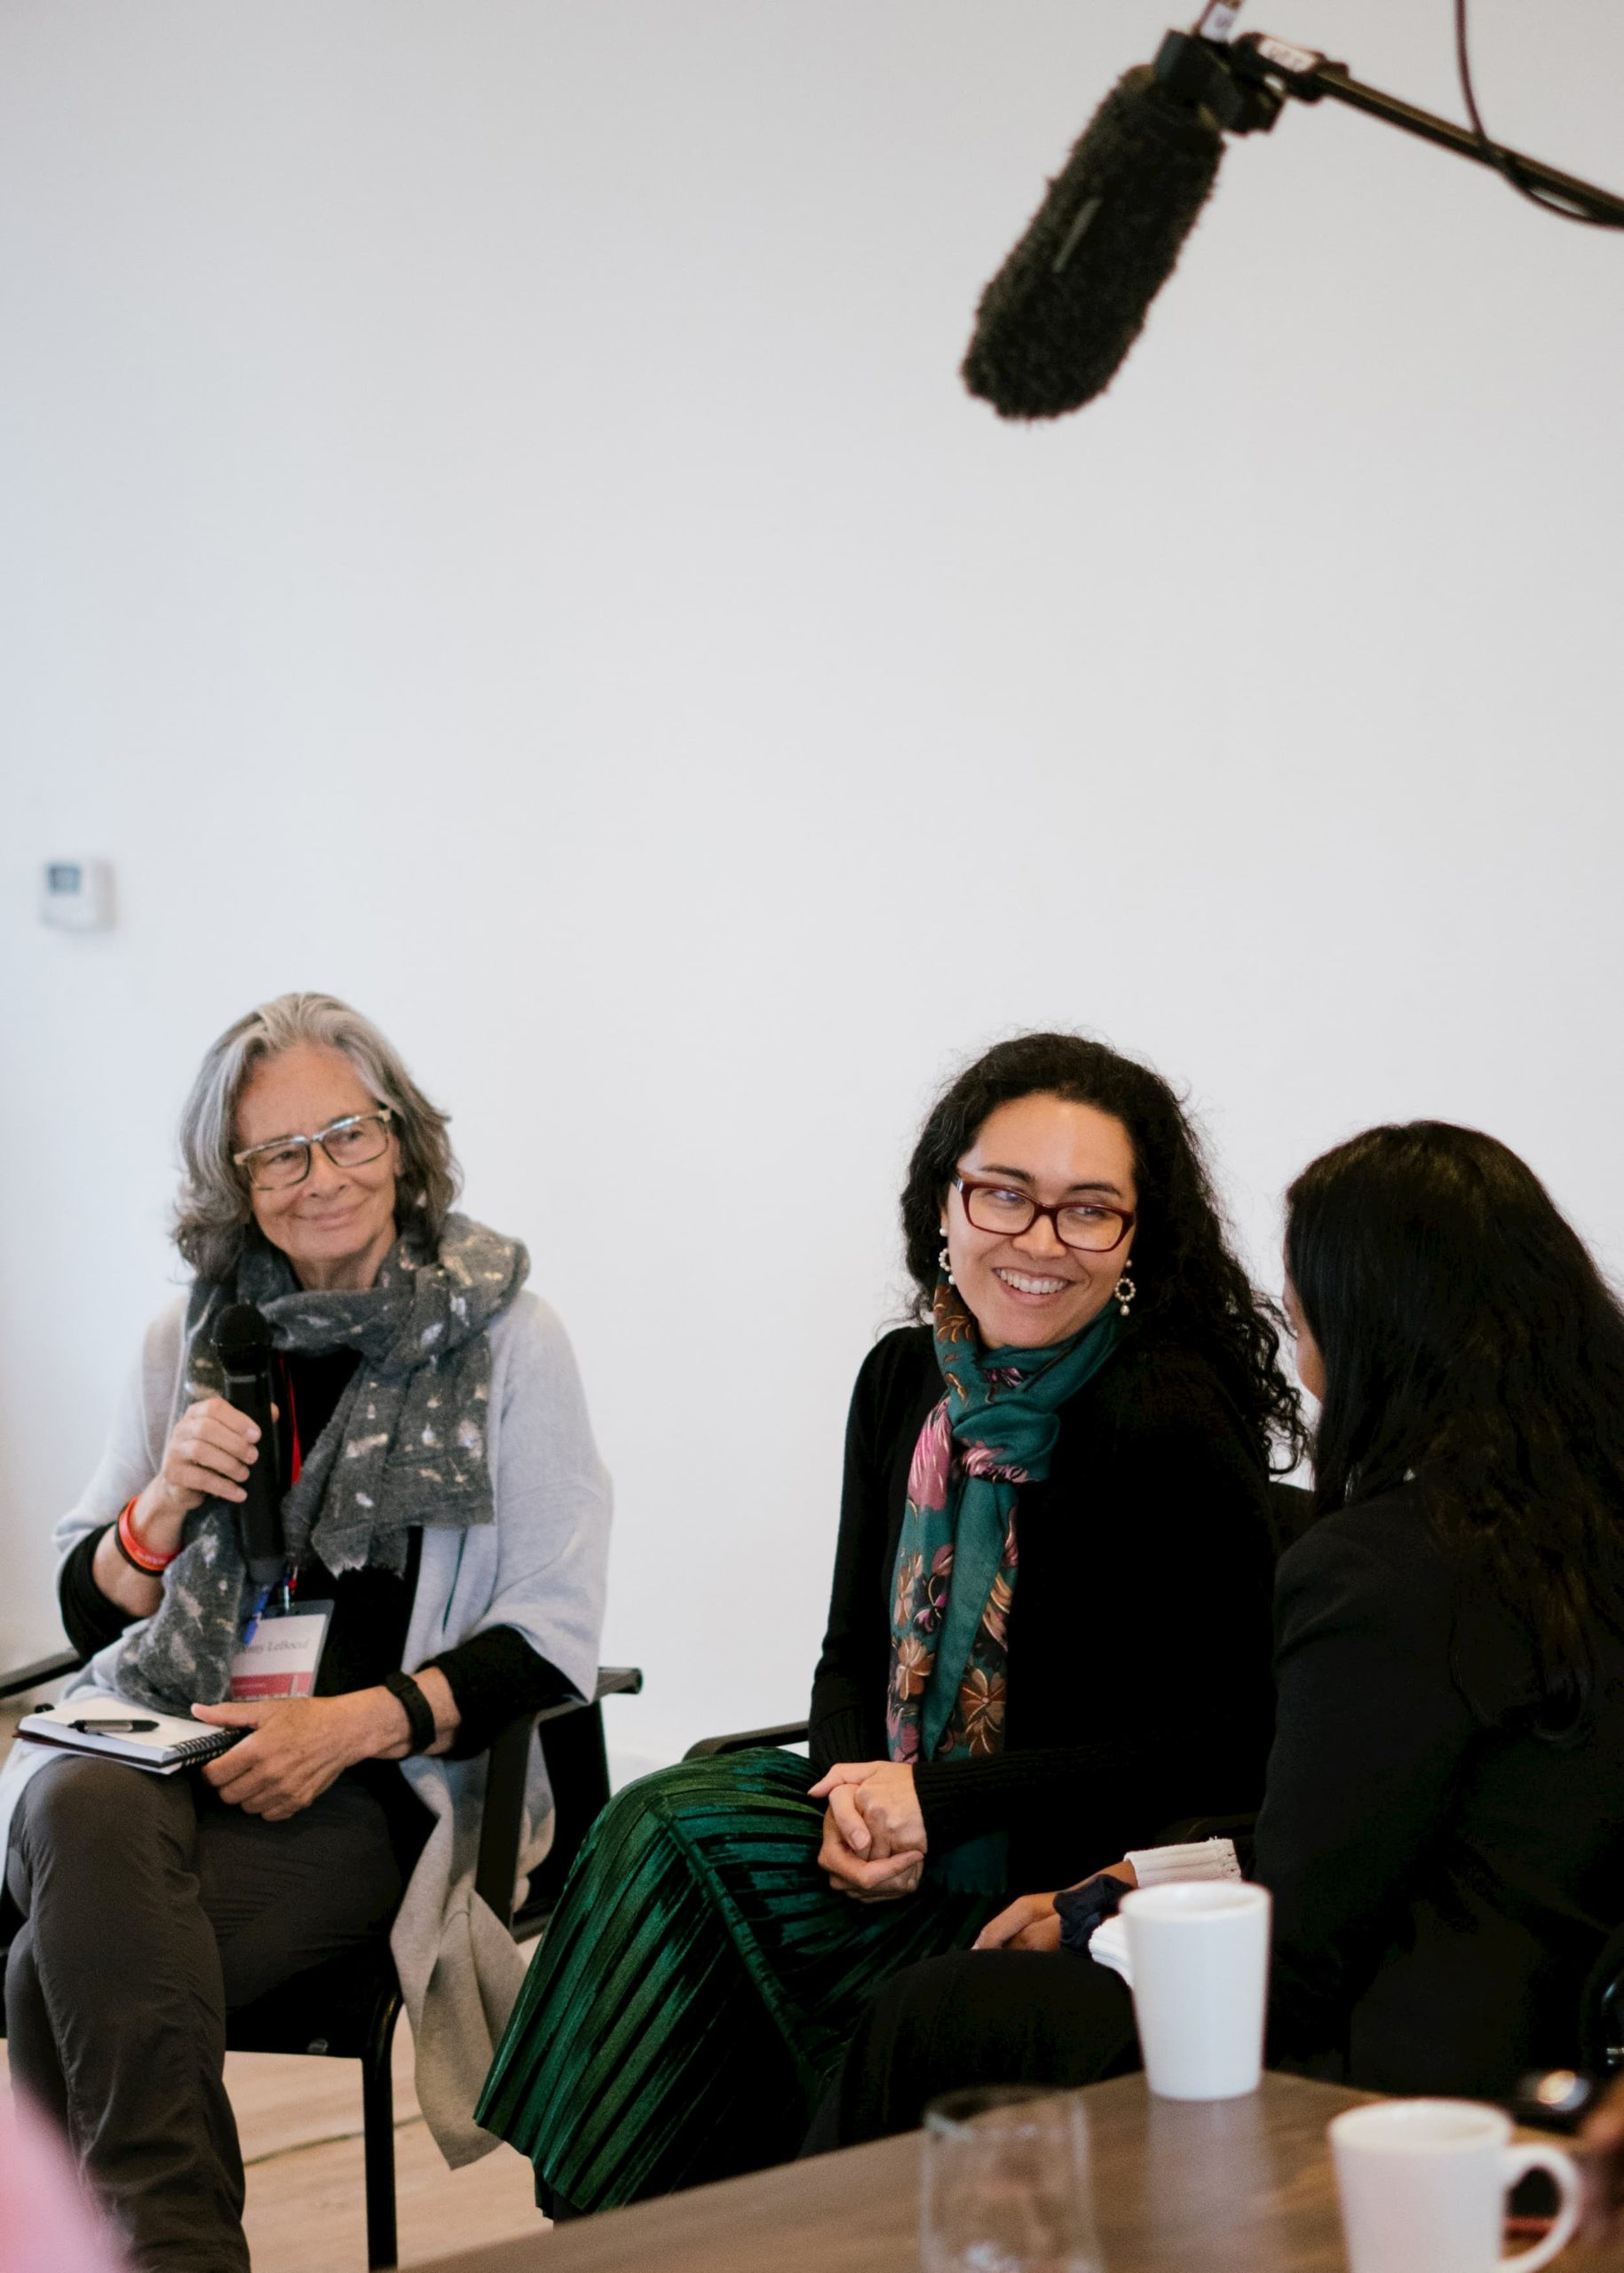 A woman in a light-colored cardigan and a woman in a black sweater and a green skirt are sitting in chairs and smiling. A third woman in a black clothing is sitting with her back turned to the camera.